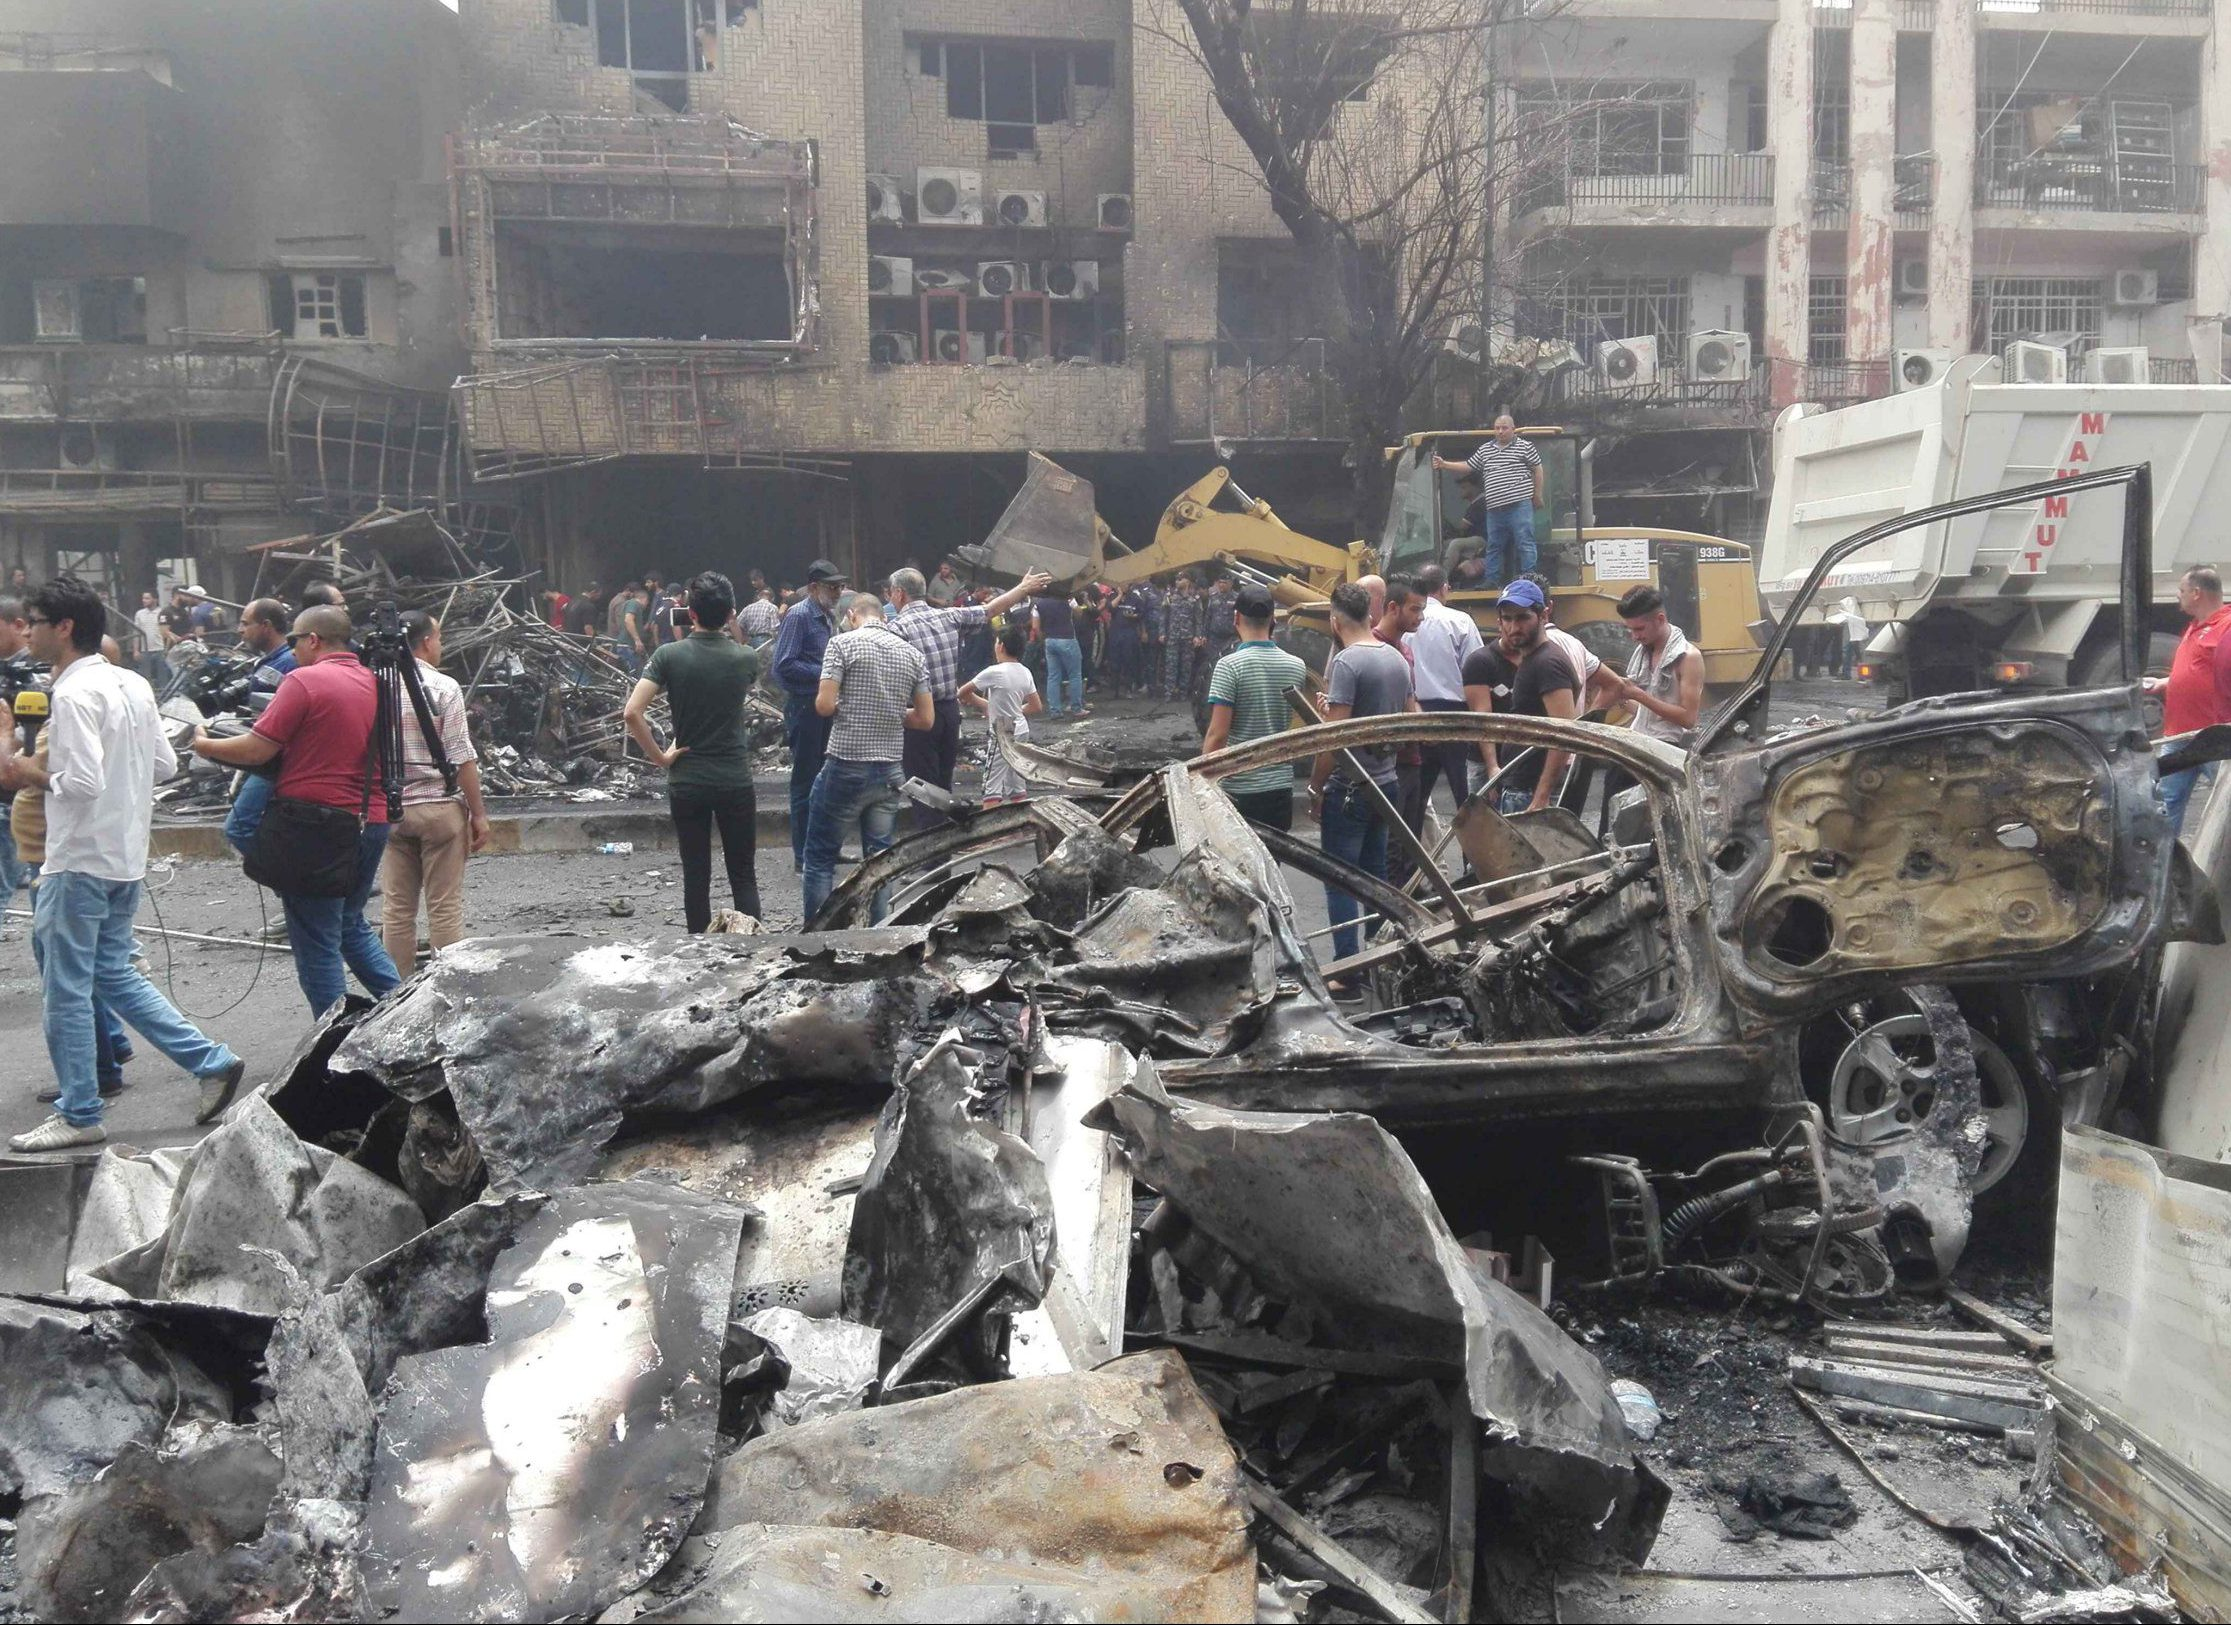 Mandatory Credit: Photo by Xinhua/REX/Shutterstock (5744685a) Scene of the attack Car bomb attack, Baghdad, Iraq - 03 Jul 2016 At least 125 people have been killed and about 150 injured in an explosion claimed by the Islamic State group in Baghdad